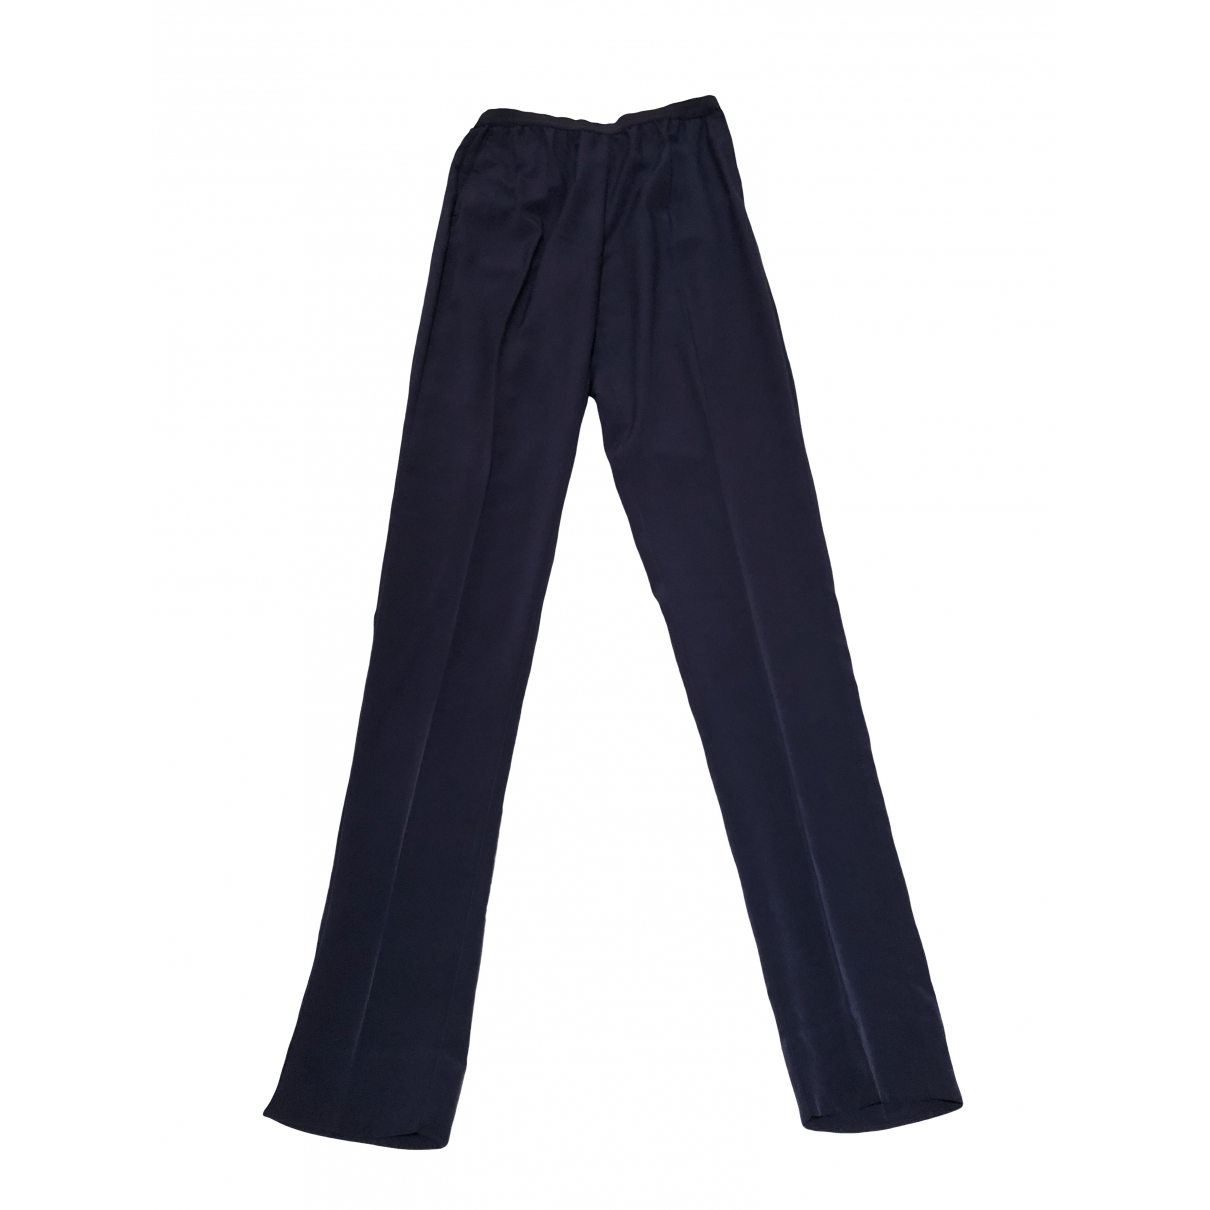 Maison Martin Margiela \N Blue Trousers for Women 42 IT